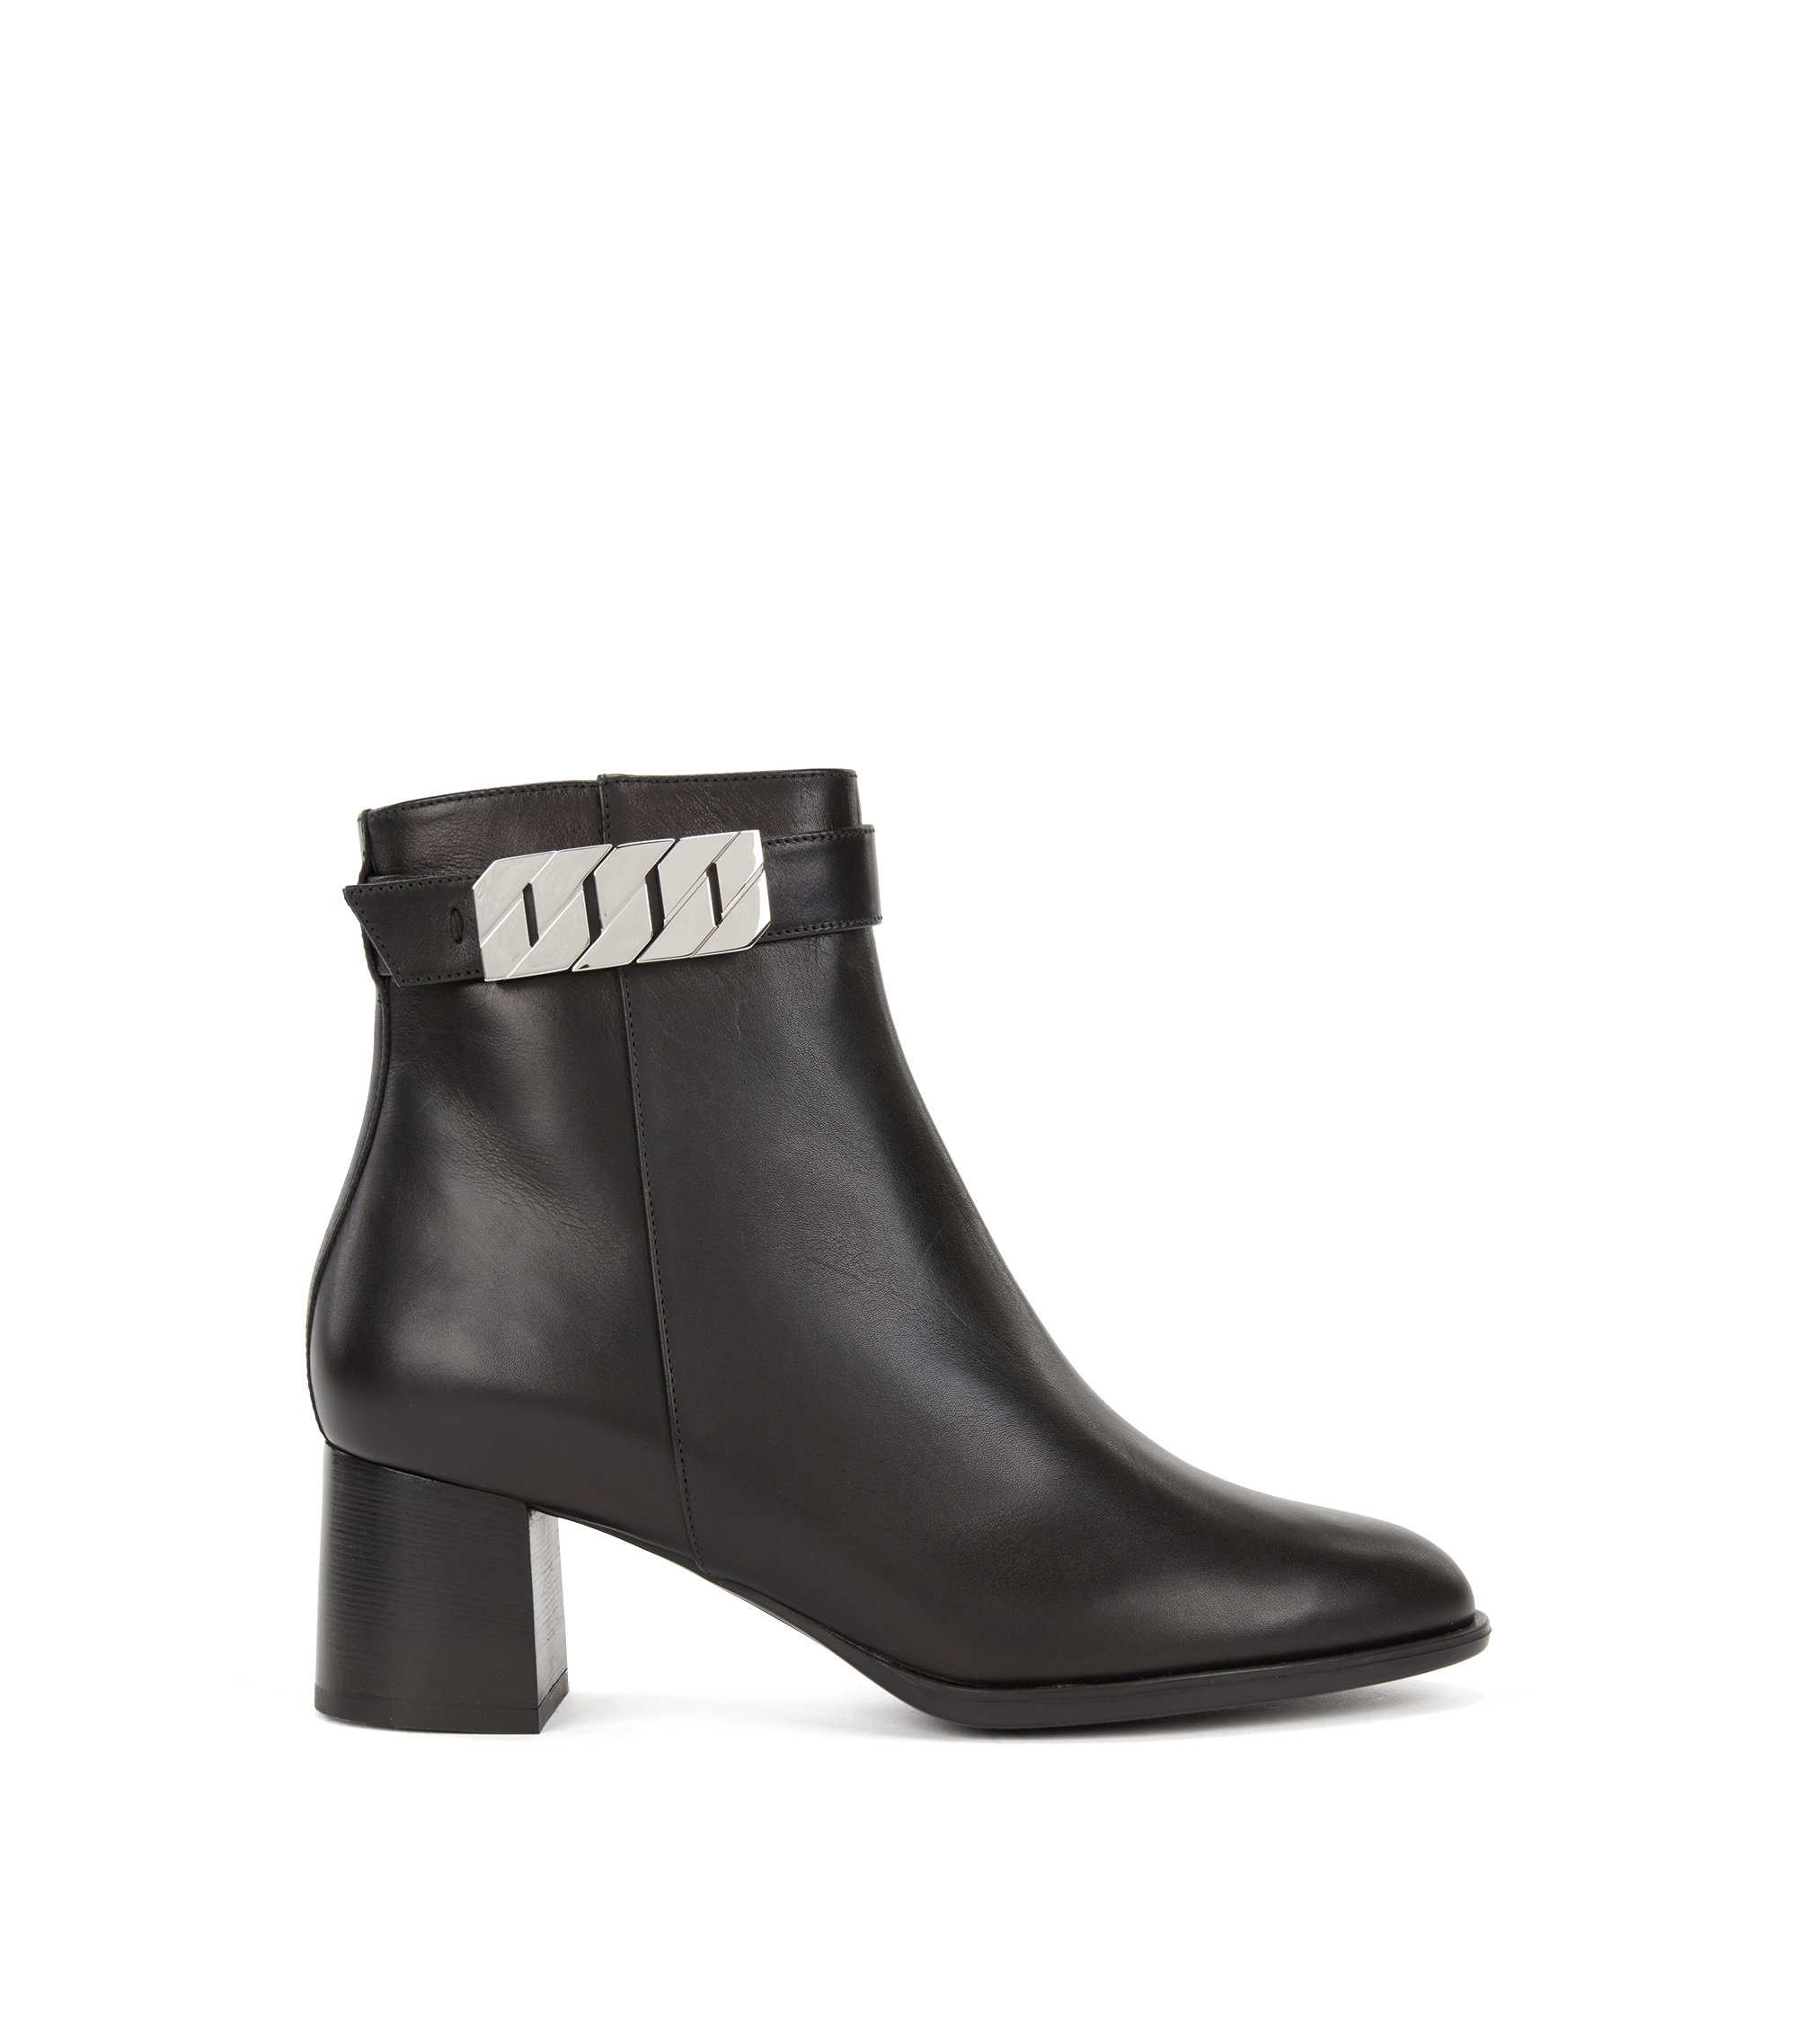 Ankle boots in Italian calf leather with chain detailing, Black